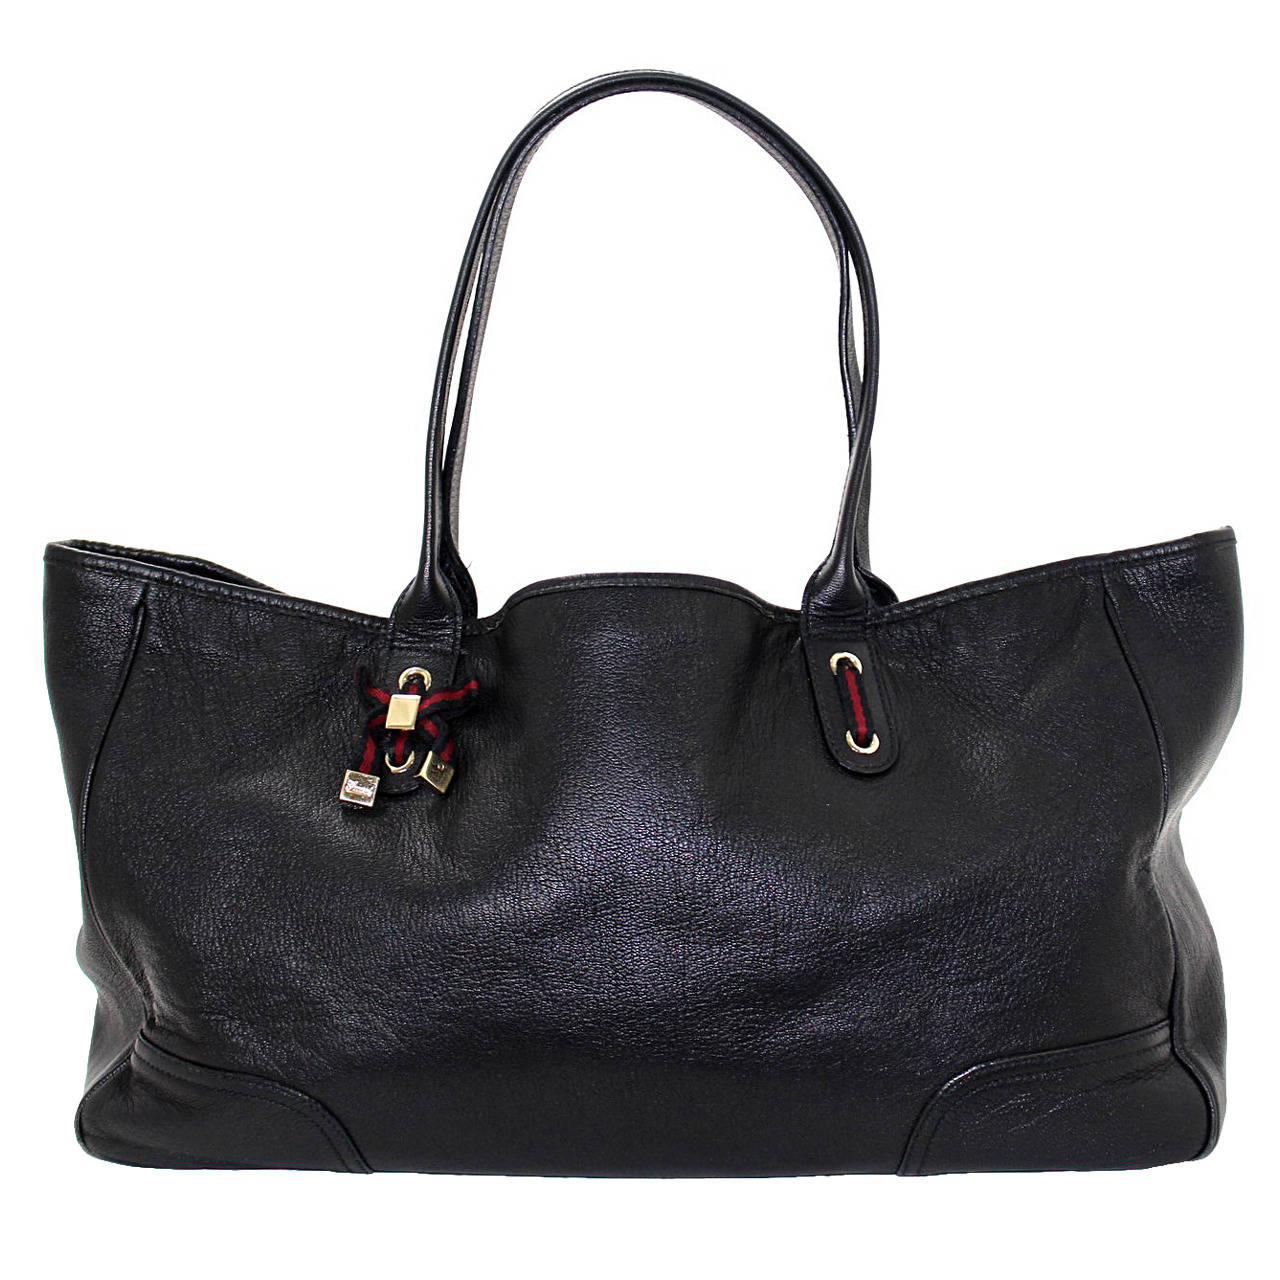 Gucci Black Leather Slouchy Tote Bag- Large at 1stdibs